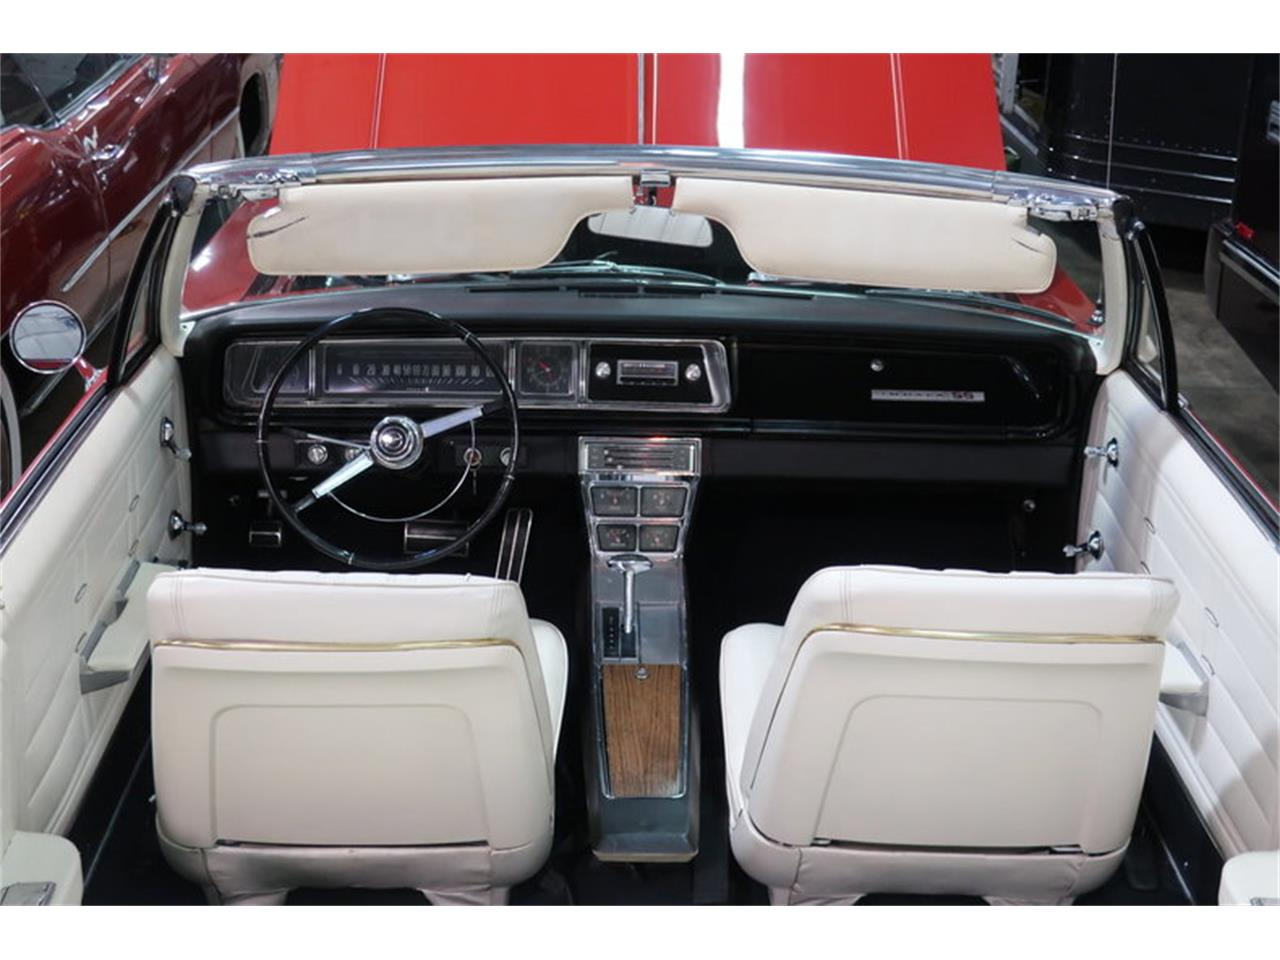 Large Picture of '66 Impala located in Greensboro North Carolina Auction Vehicle Offered by GAA Classic Cars Auctions - OF92